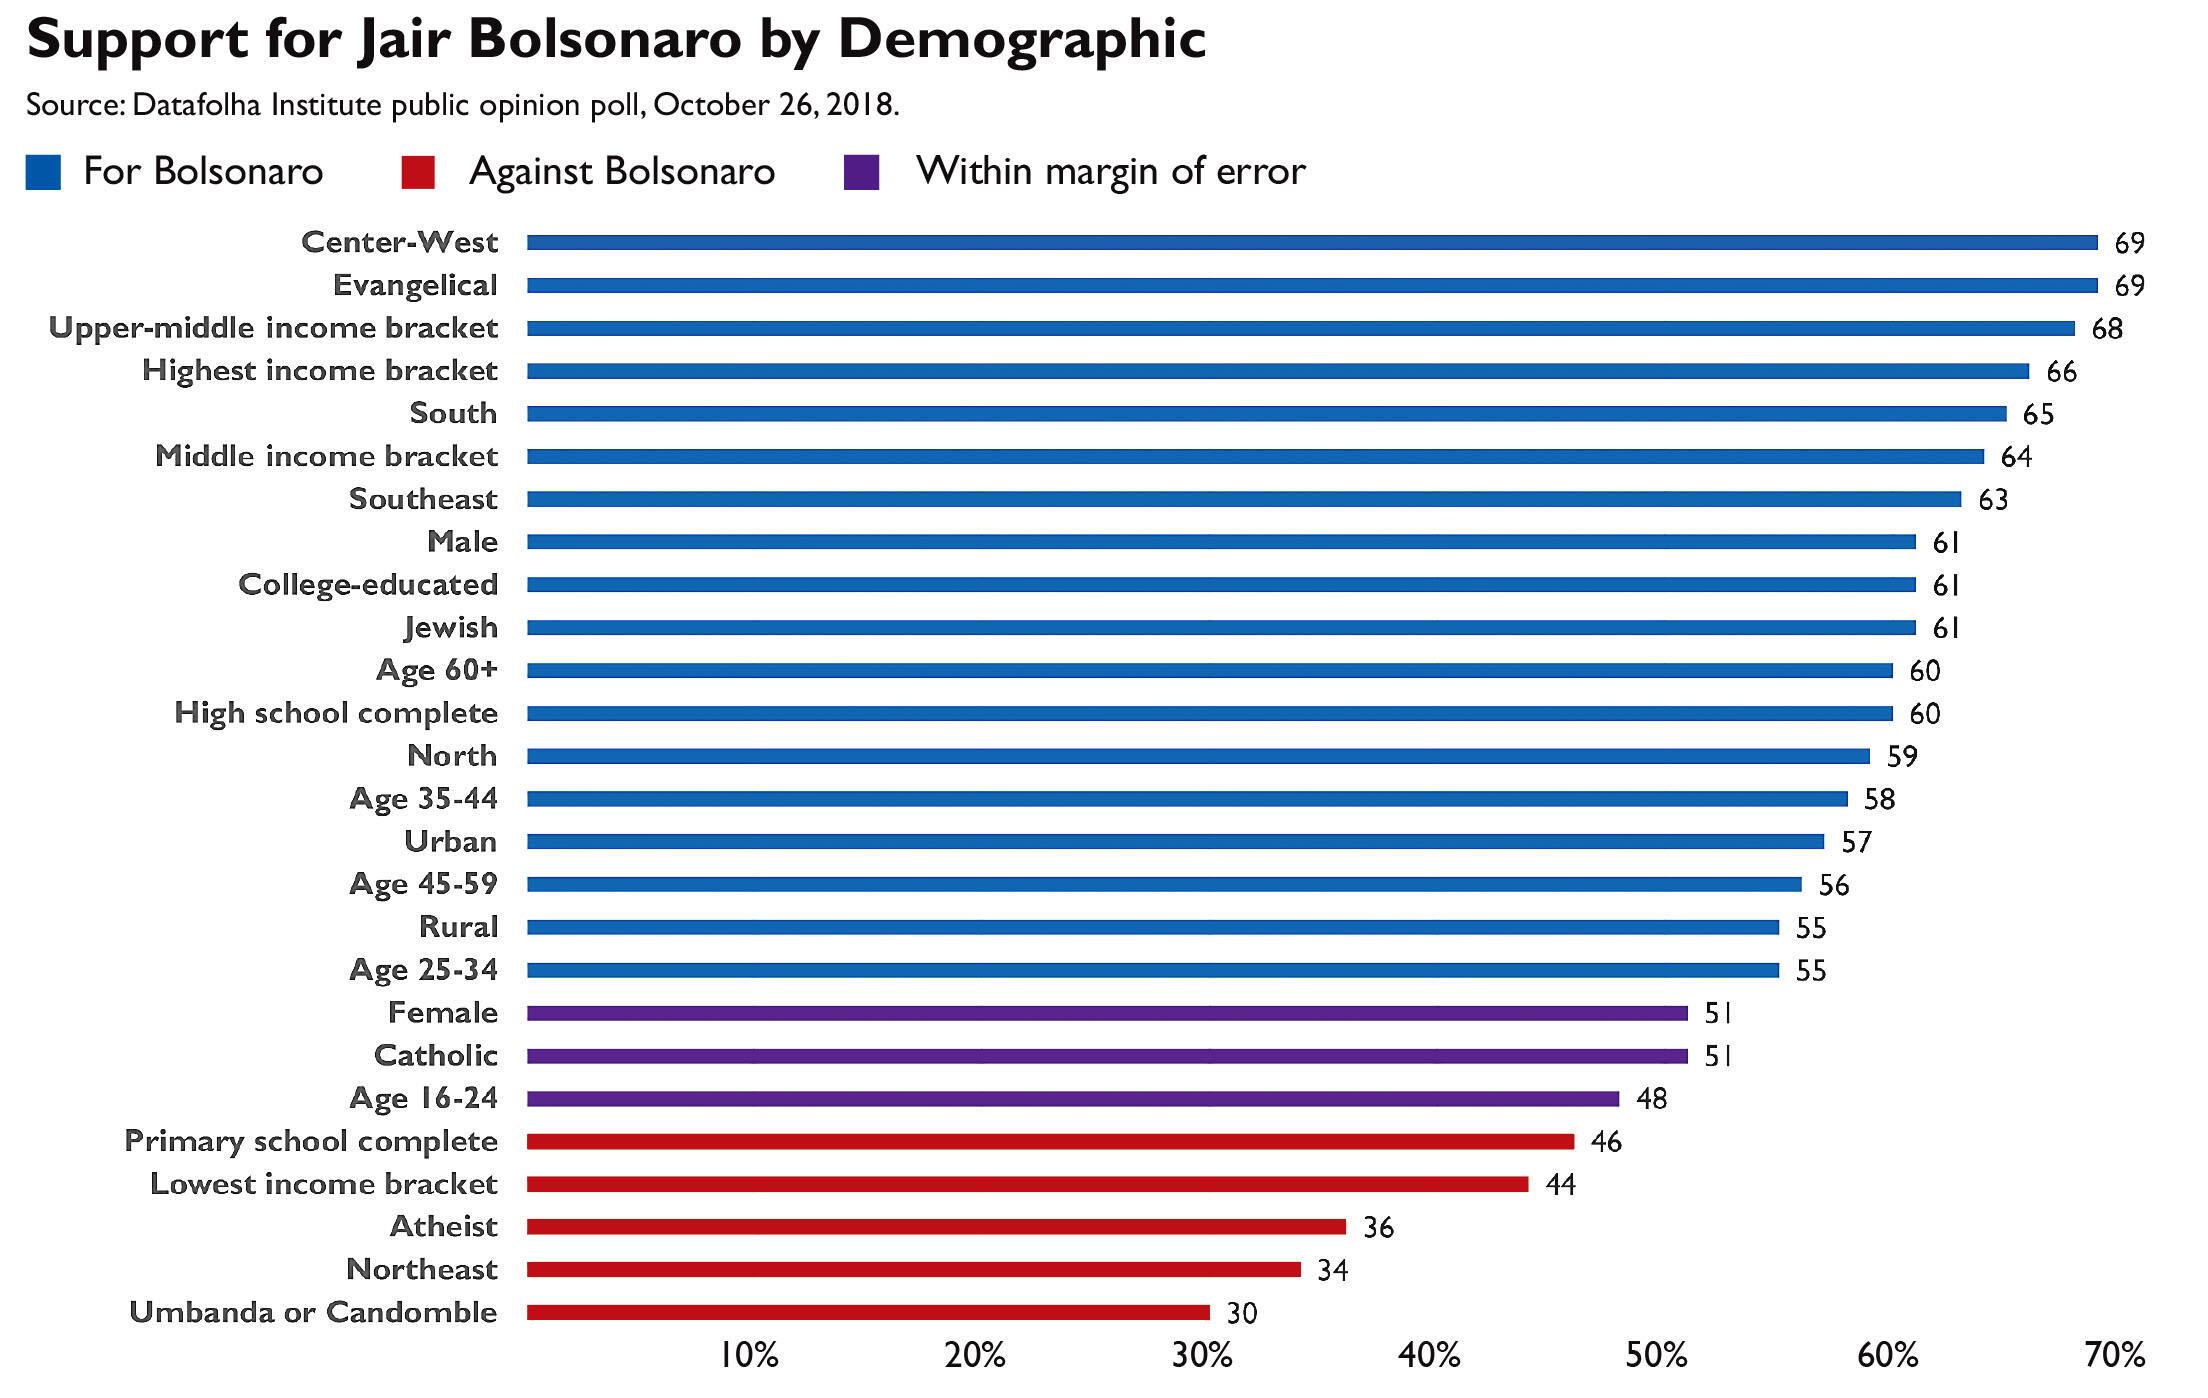 Graph showing support for Jaír Bolsonaro by demographic, from a Datafolha institute poll, October 2018.